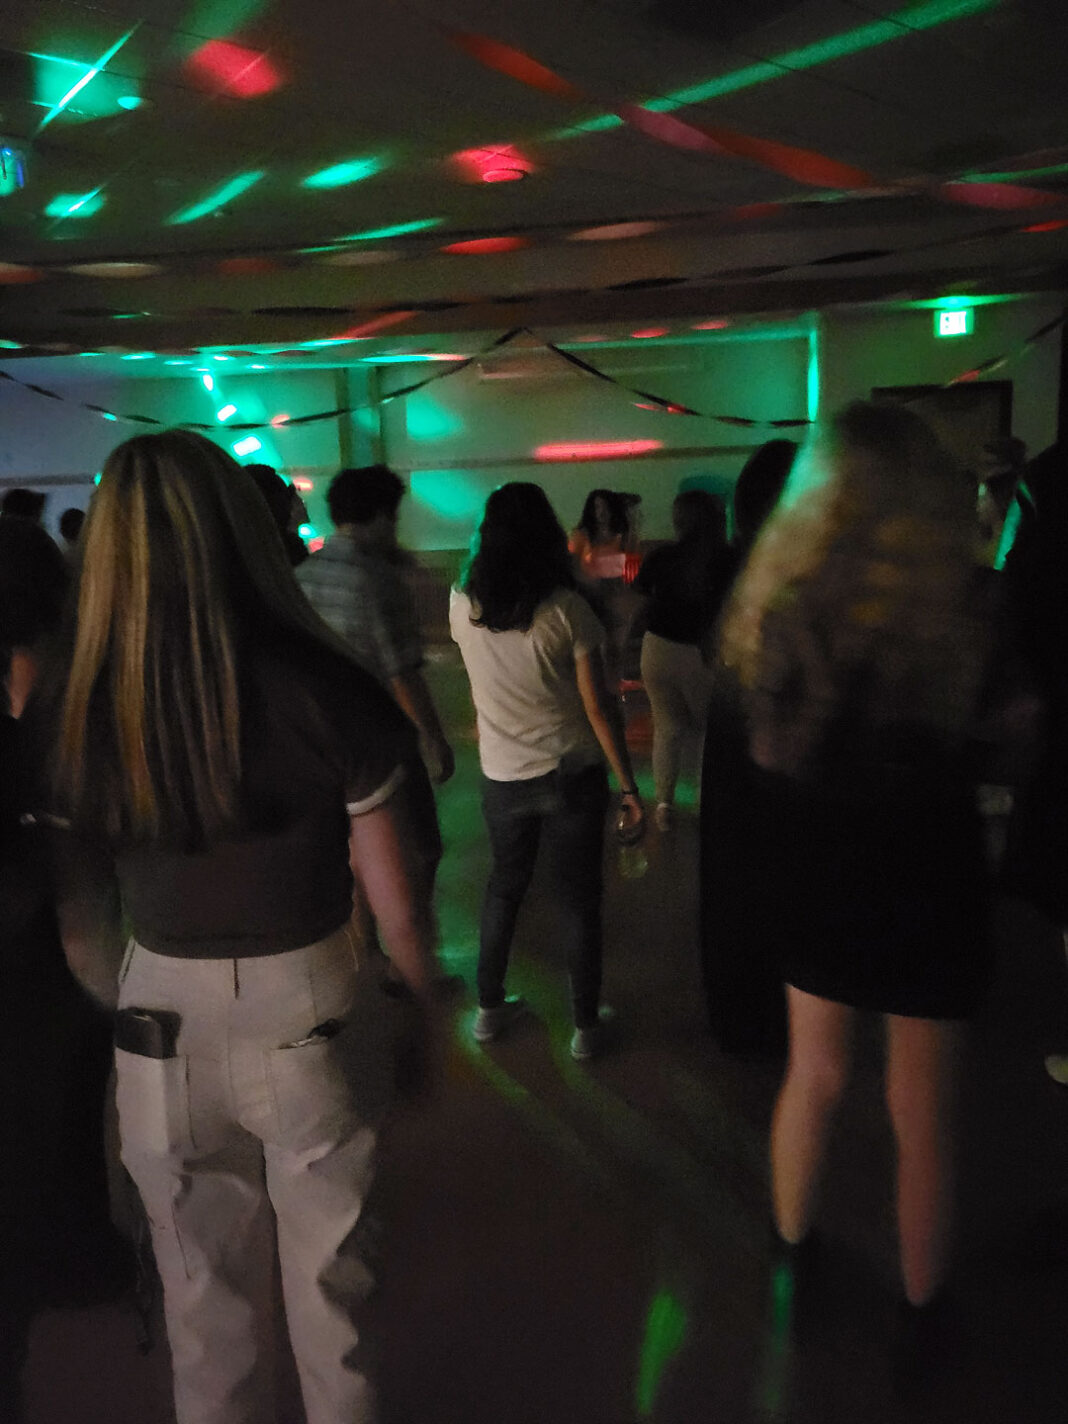 People lined up to dance under strobe lights